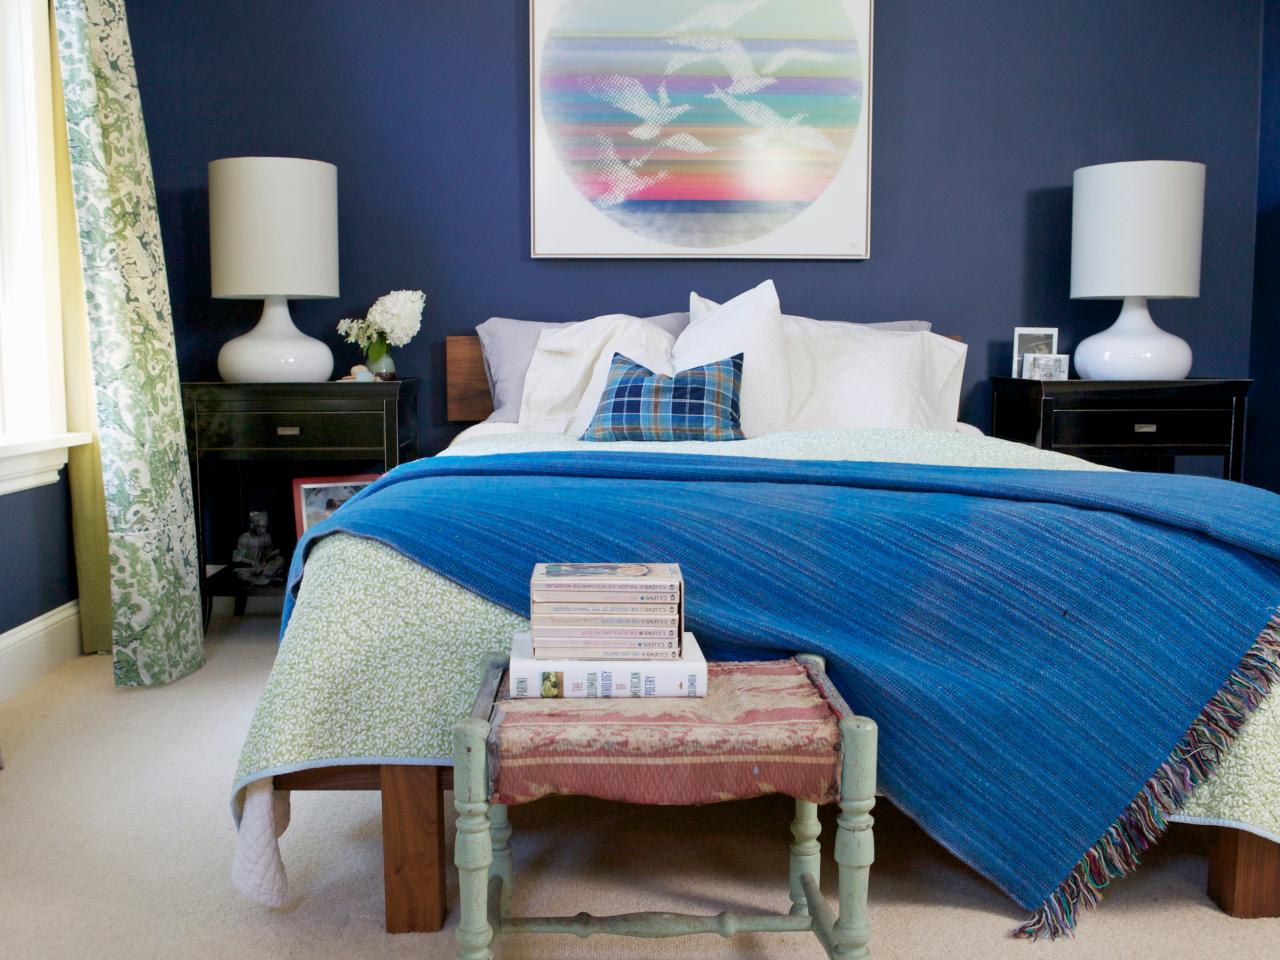 Here is How to Decorate the Space Around Your Bed